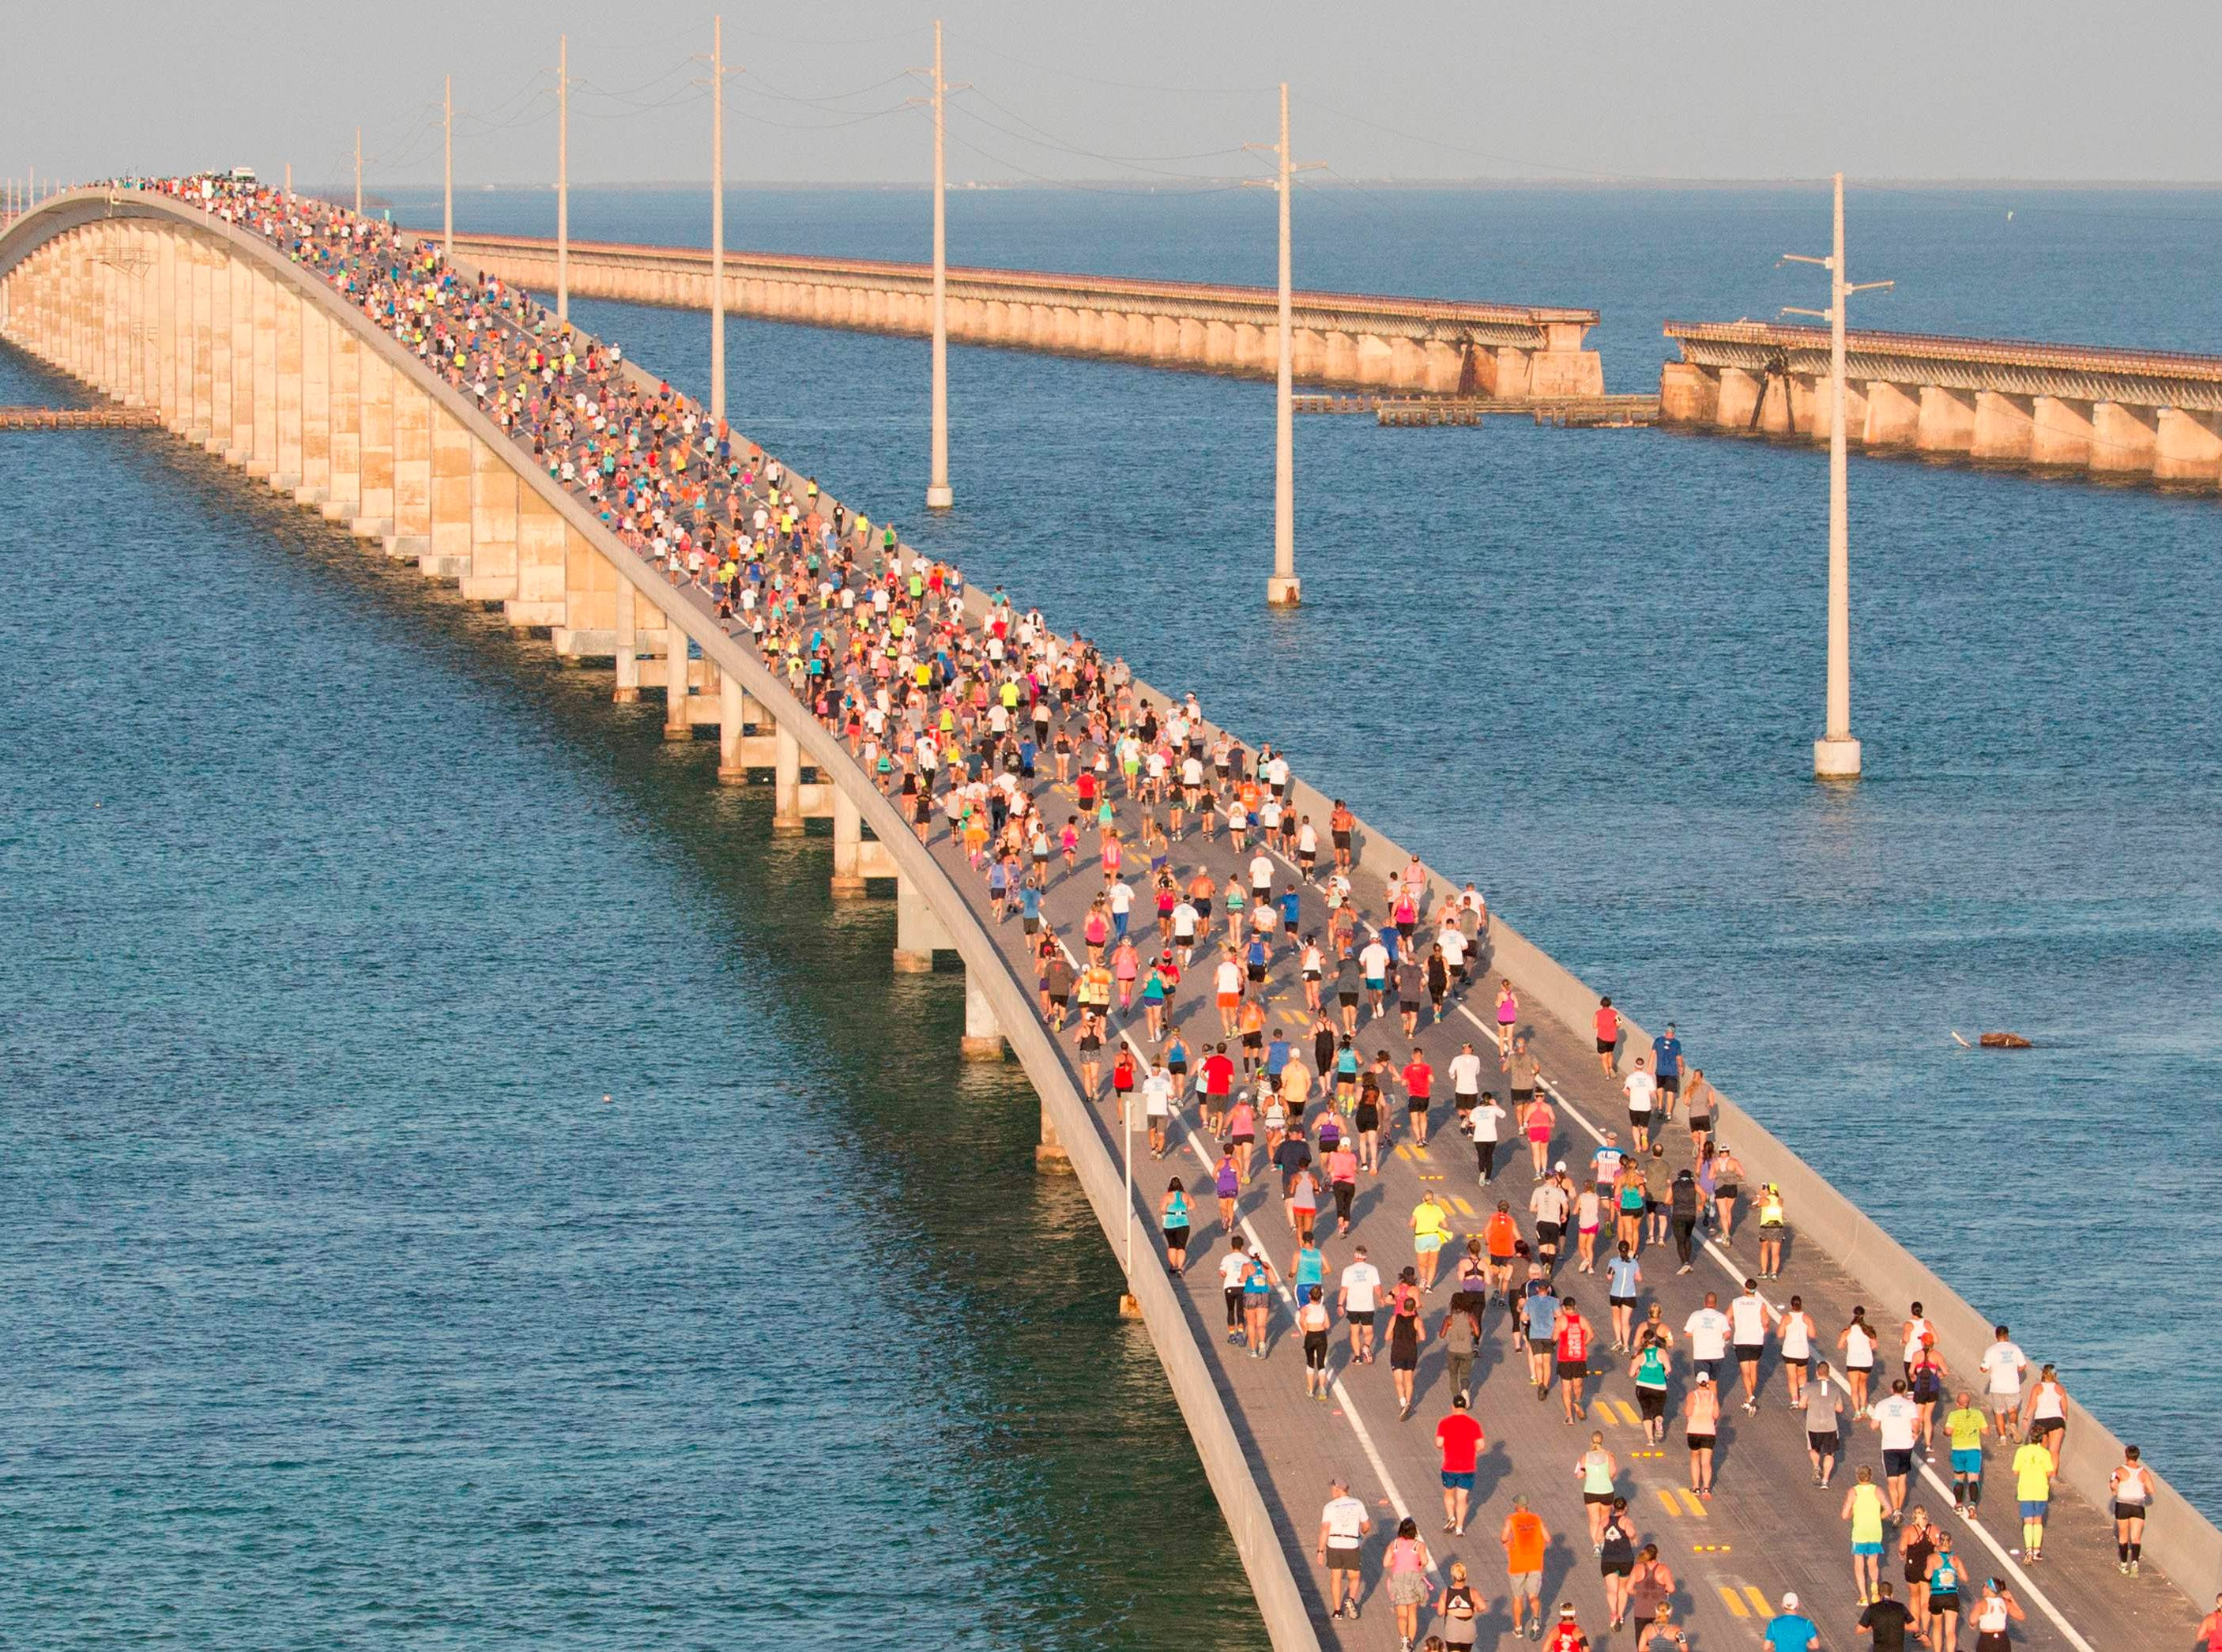 """In this aerial photo provided by the Florida Keys News Bureau, a portion of a field of about 1,500 runners reaches the top of the Florida Keys Overseas Highway's longest bridge during the Seven Mile Bridge Run Saturday, April 14, 2018, near Marathon, Florida.  The race over the convergence of the Atlantic Ocean and Gulf of Mexico was initiated in 1982 to mark the completion of a federally funded bridge rebuilding program to replace 37 aging spans originally built in the early 1900s to carry railroad trains.  / AFP PHOTO / Florida Keys News Bureau / Bob Care / RESTRICTED TO EDITORIAL USE - MANDATORY CREDIT """"AFP PHOTO / Florida Keys News Bureau / Bob CARE"""" - NO MARKETING NO ADVERTISING CAMPAIGNS - DISTRIBUTED AS A SERVICE TO CLIENTS  BOB CARE/AFP/Getty Images ORIG FILE ID: AFP_14133P"""